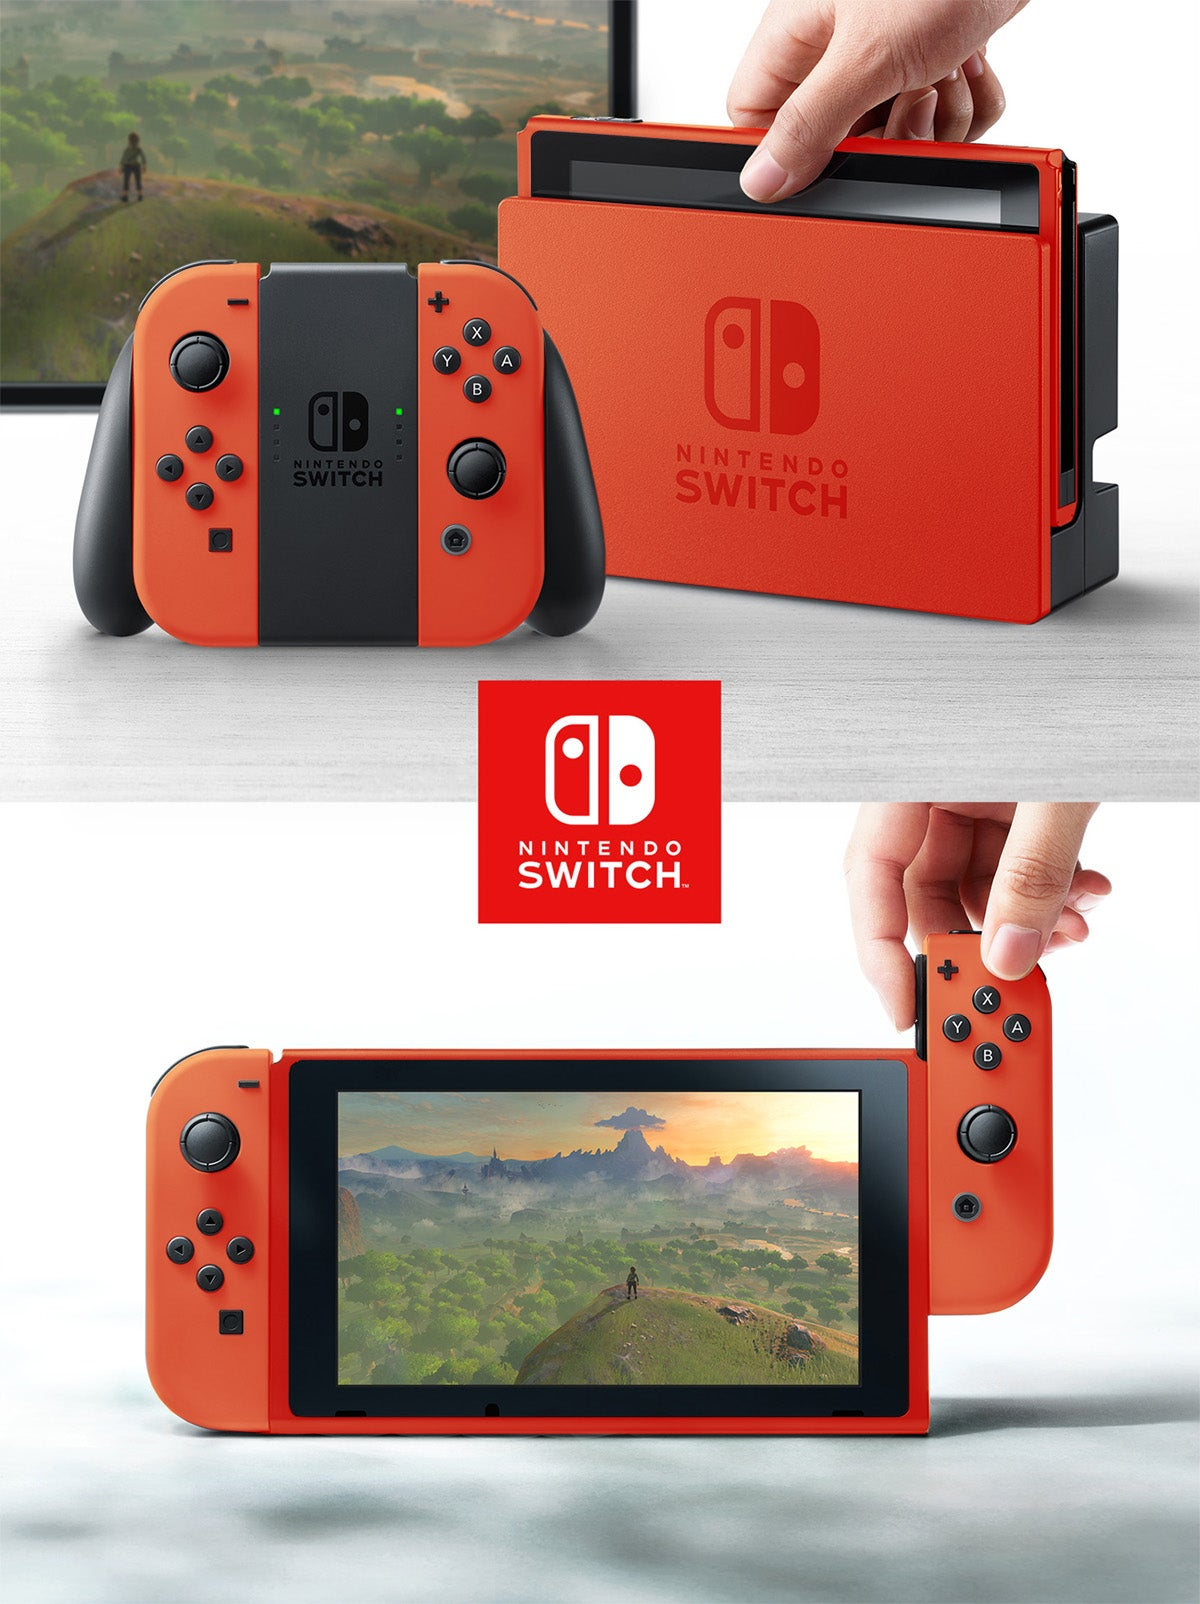 Imagining The Nintendo Switch In Different Colours